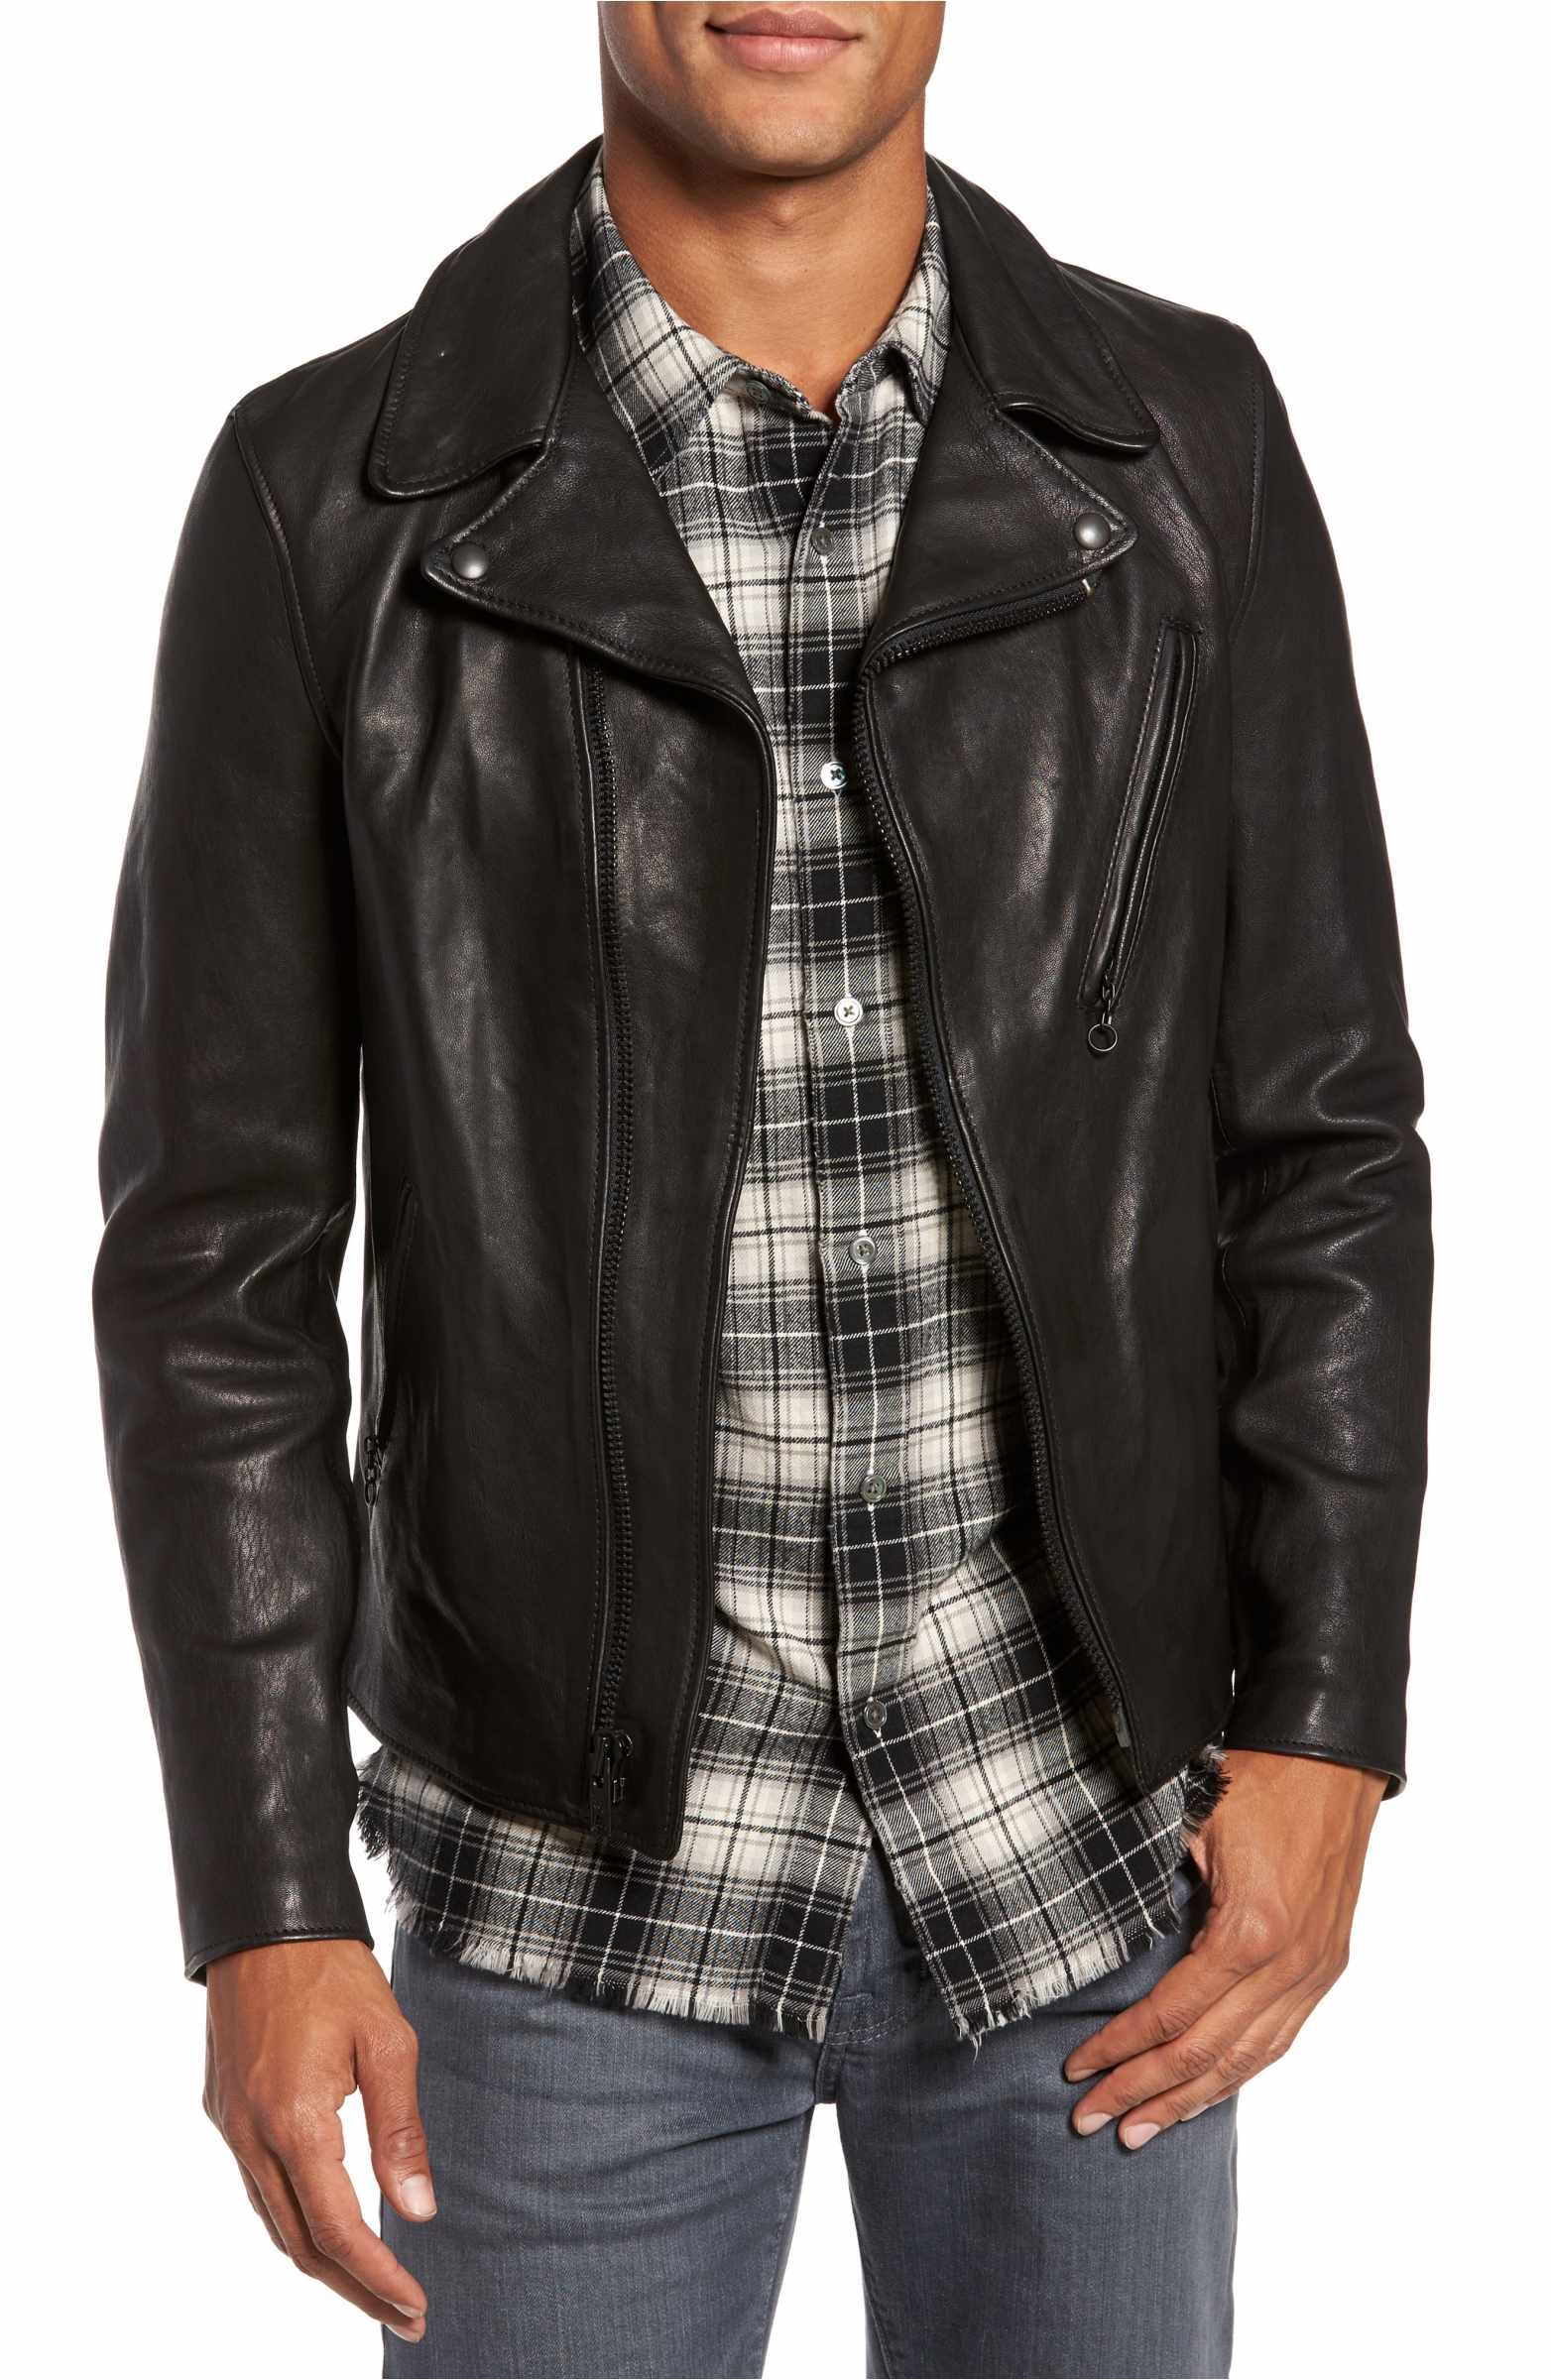 e8aa211fd27 Schott NYC Perfecto Brand Leather Jacket - The OG of jackets w  just the  right amount of details!